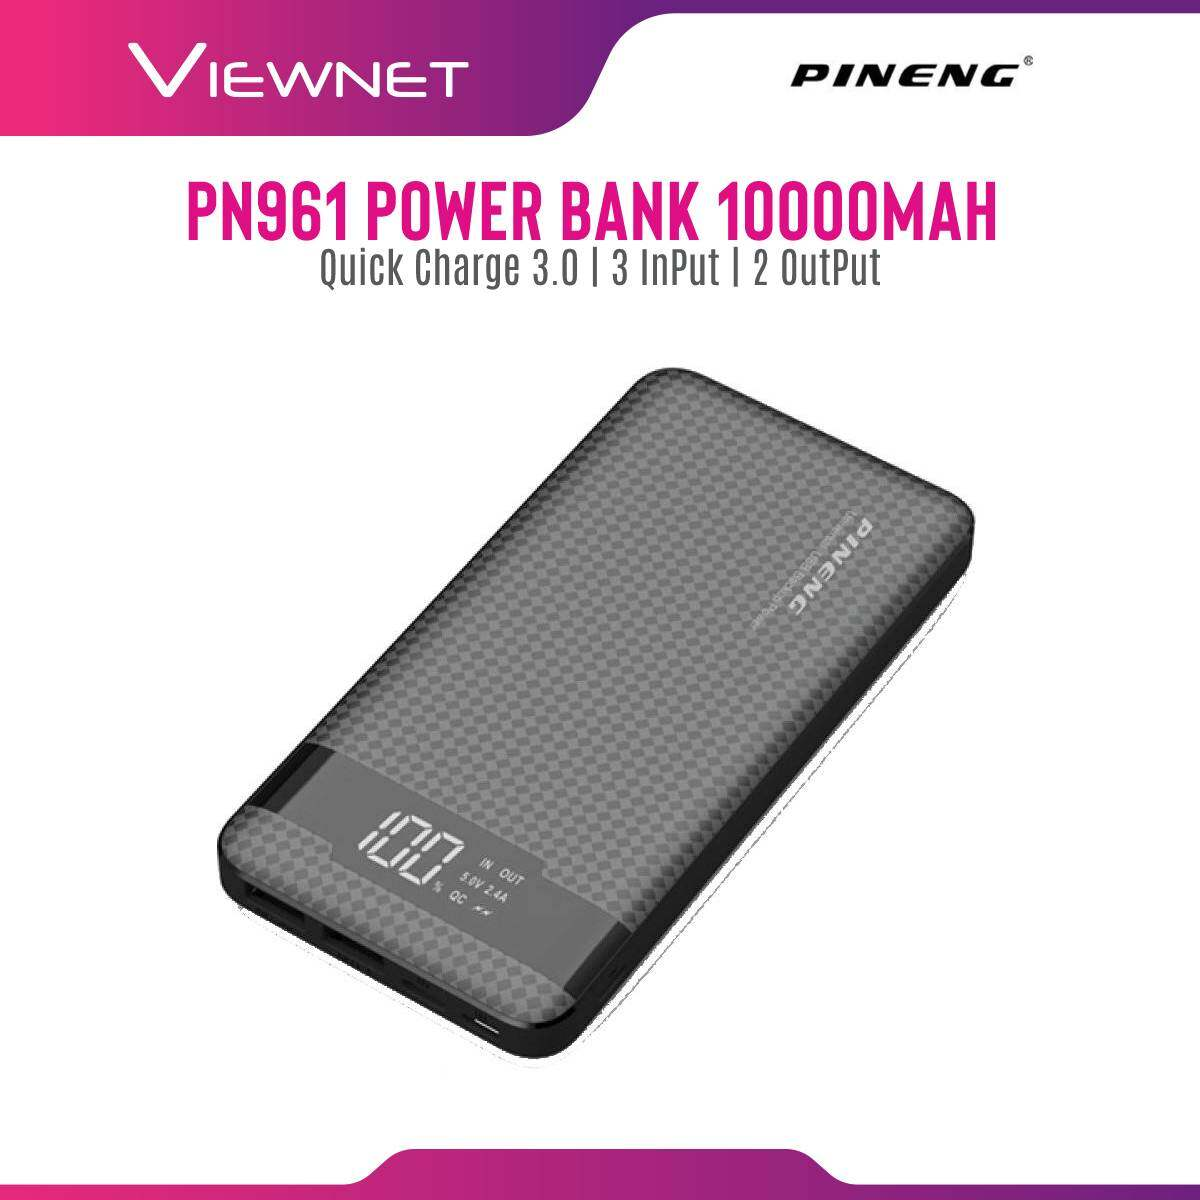 Pineng 10000mAh Power Bank (PN-961), Quick Charge 3.0, 3-In 2-Out, Lithium Polymer Battery, Duo USB Output